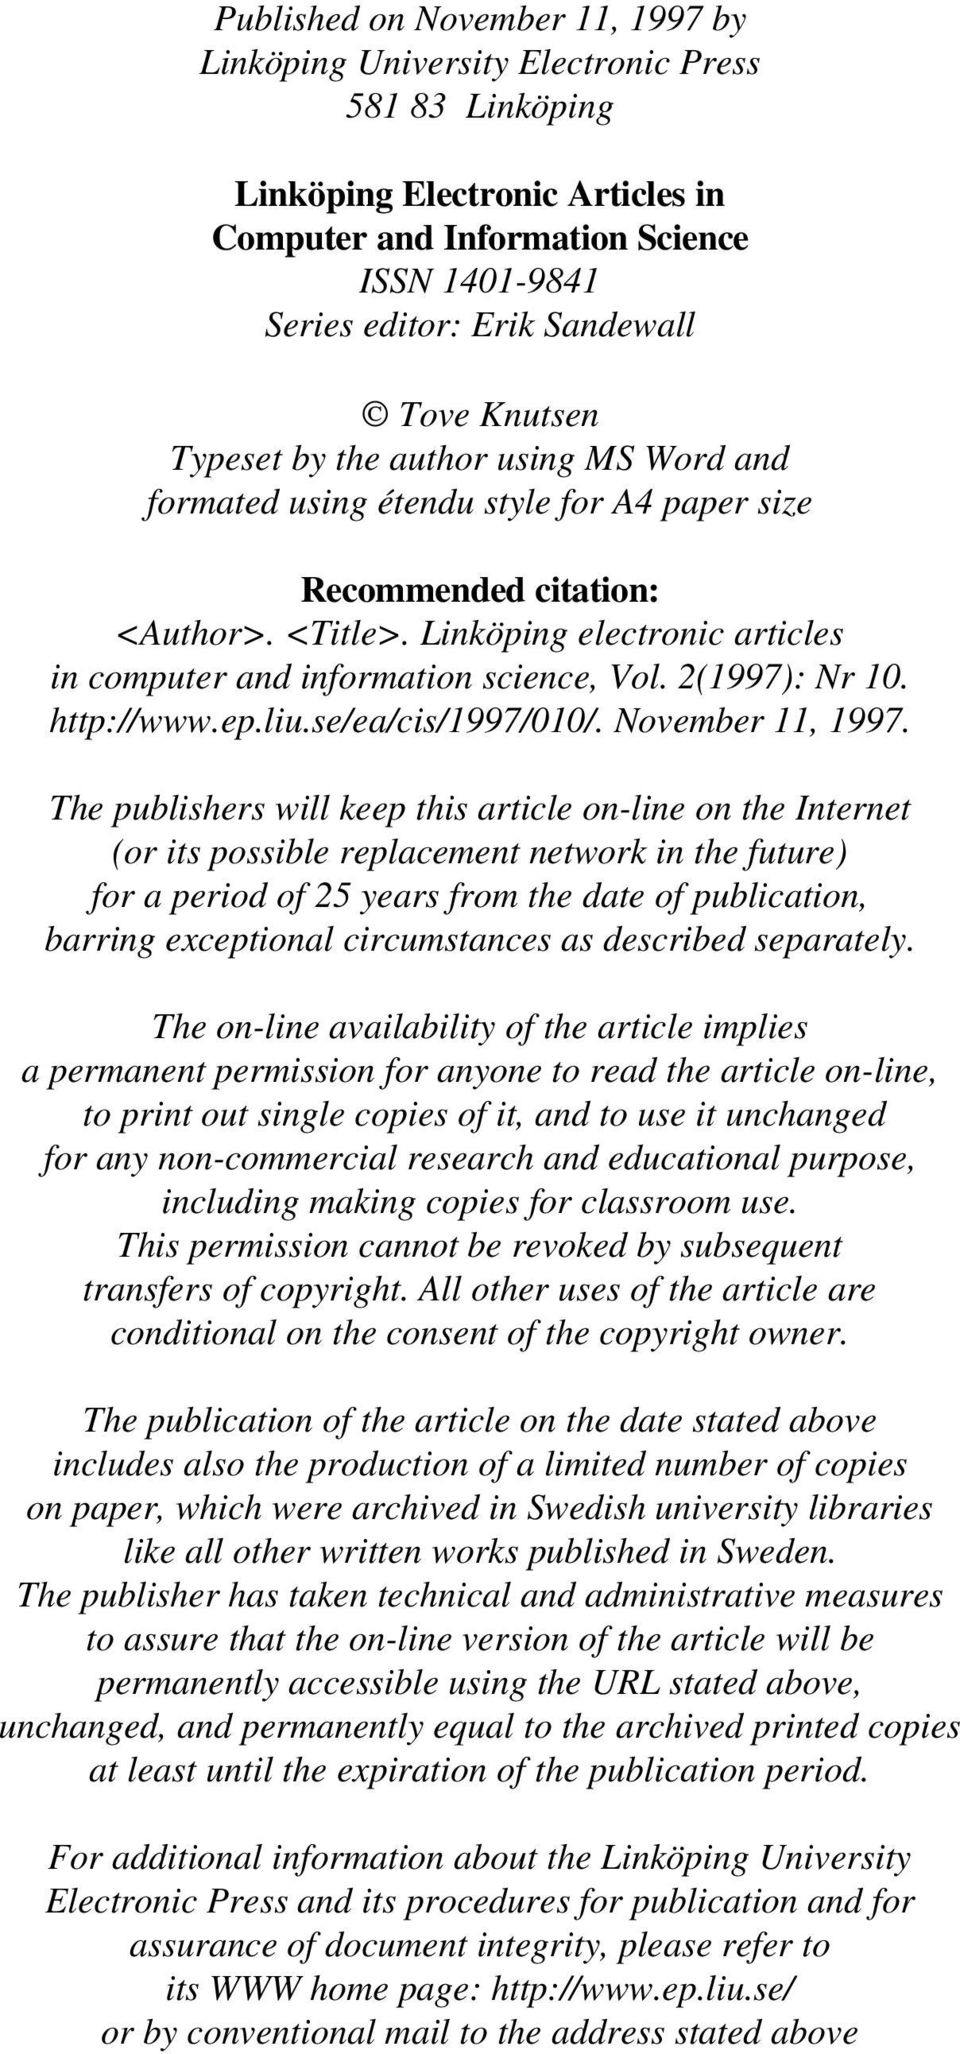 Linköping electronic articles in computer and information science, Vol. 2(1997): Nr 10. http://www.ep.liu.se/ea/cis/1997/010/. November 11, 1997.